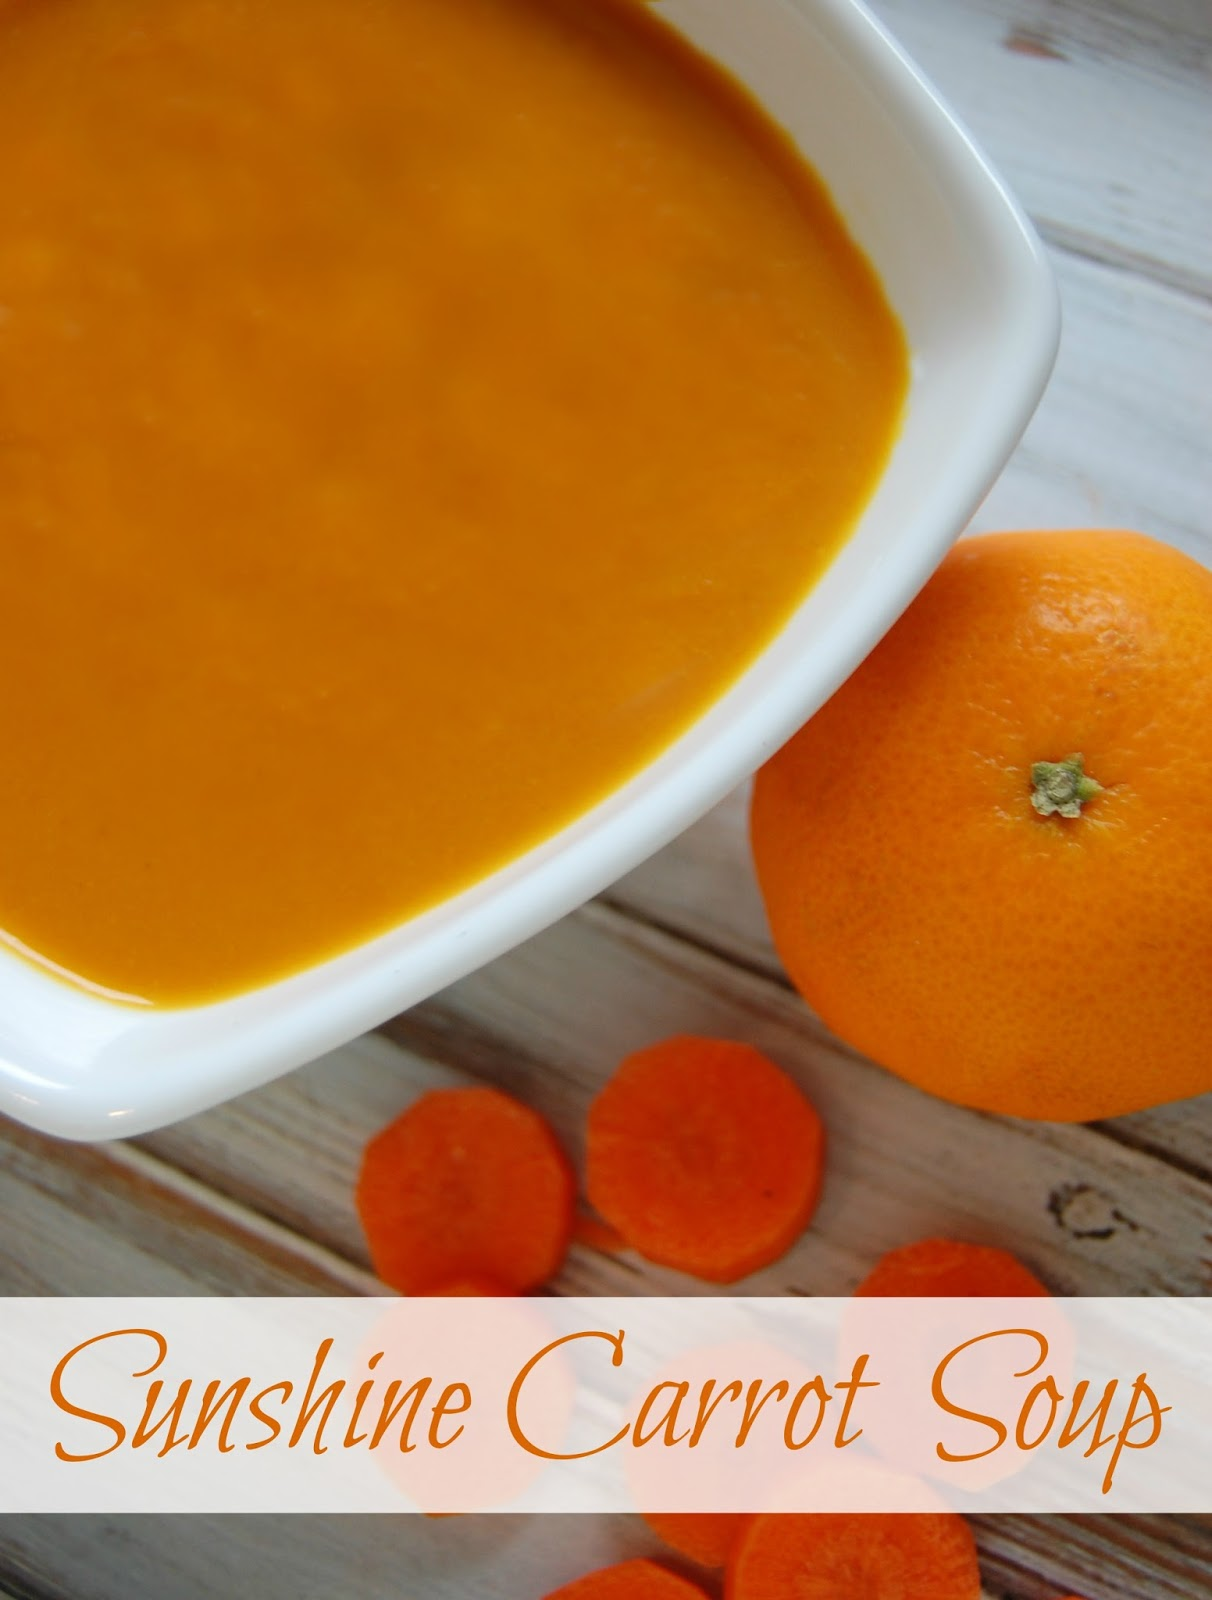 Sunshine Carrot Soup - Carrot soup with the kick of ginger and sweetness of orange!